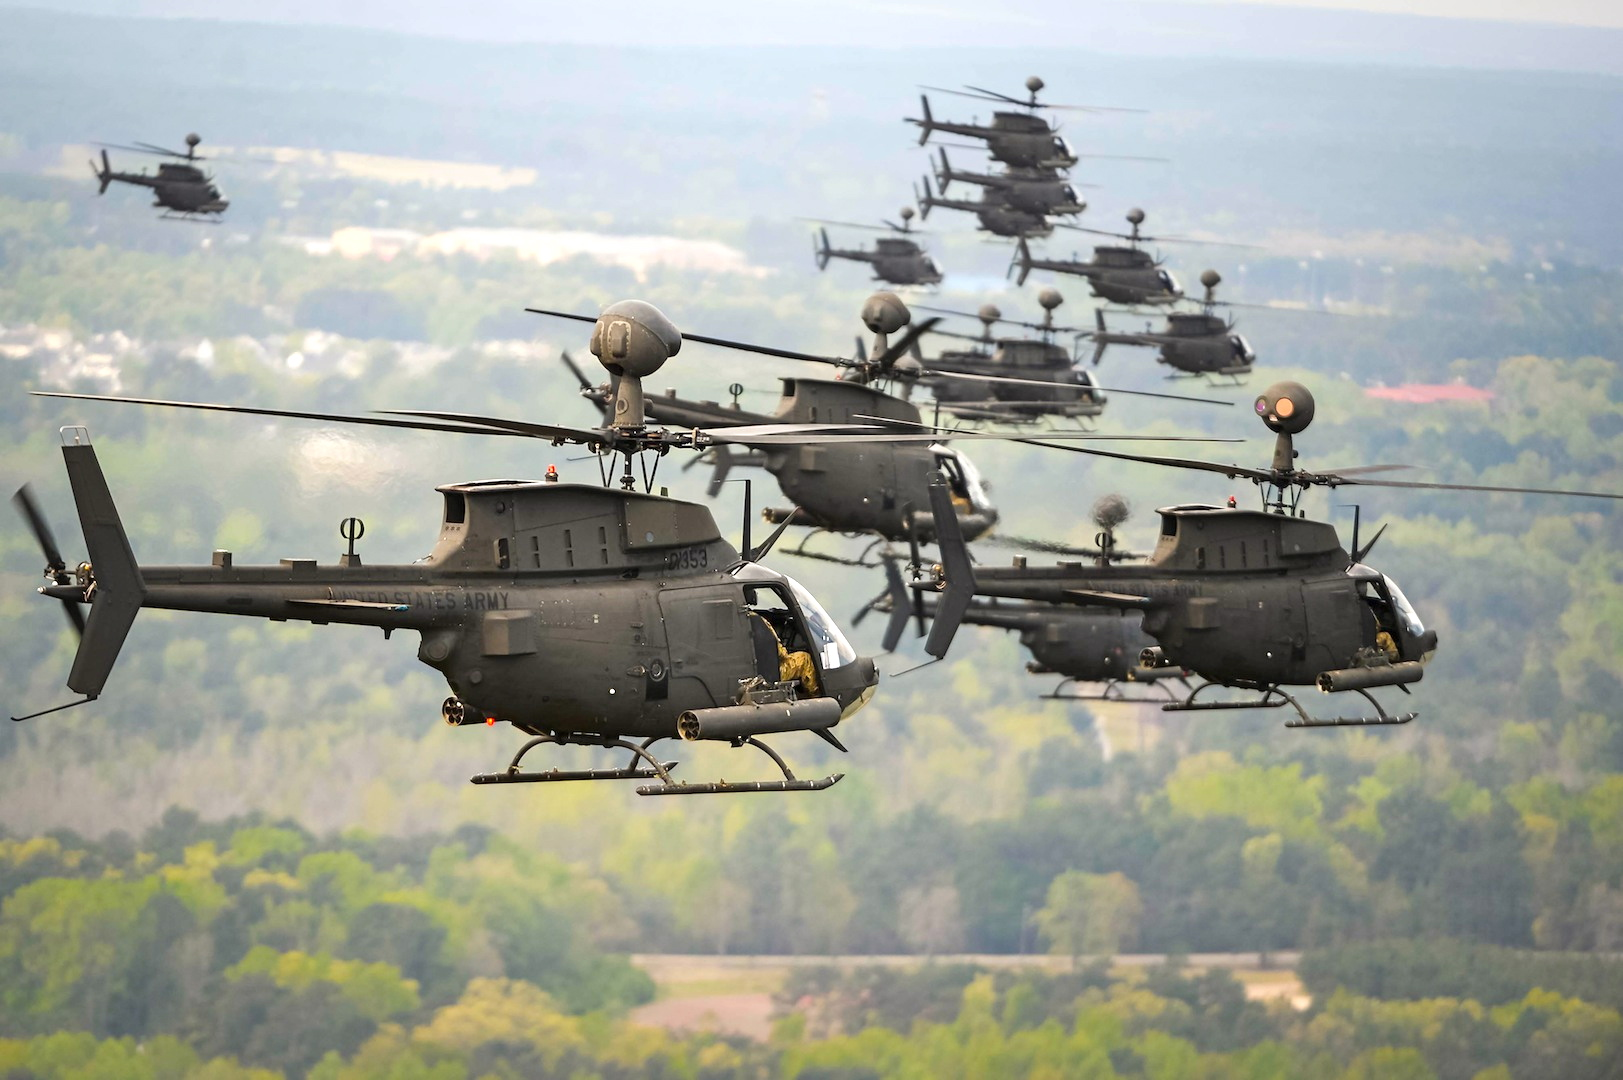 oh 58 helicopter with Croatia Tunisia First Receive Us Kiowa Warriors on 2041729 moreover H h58 besides Index cfm together with Russian Mi 28n Night Hunter Attack Helicopter as well Oh 58d Kiowa Warrior.